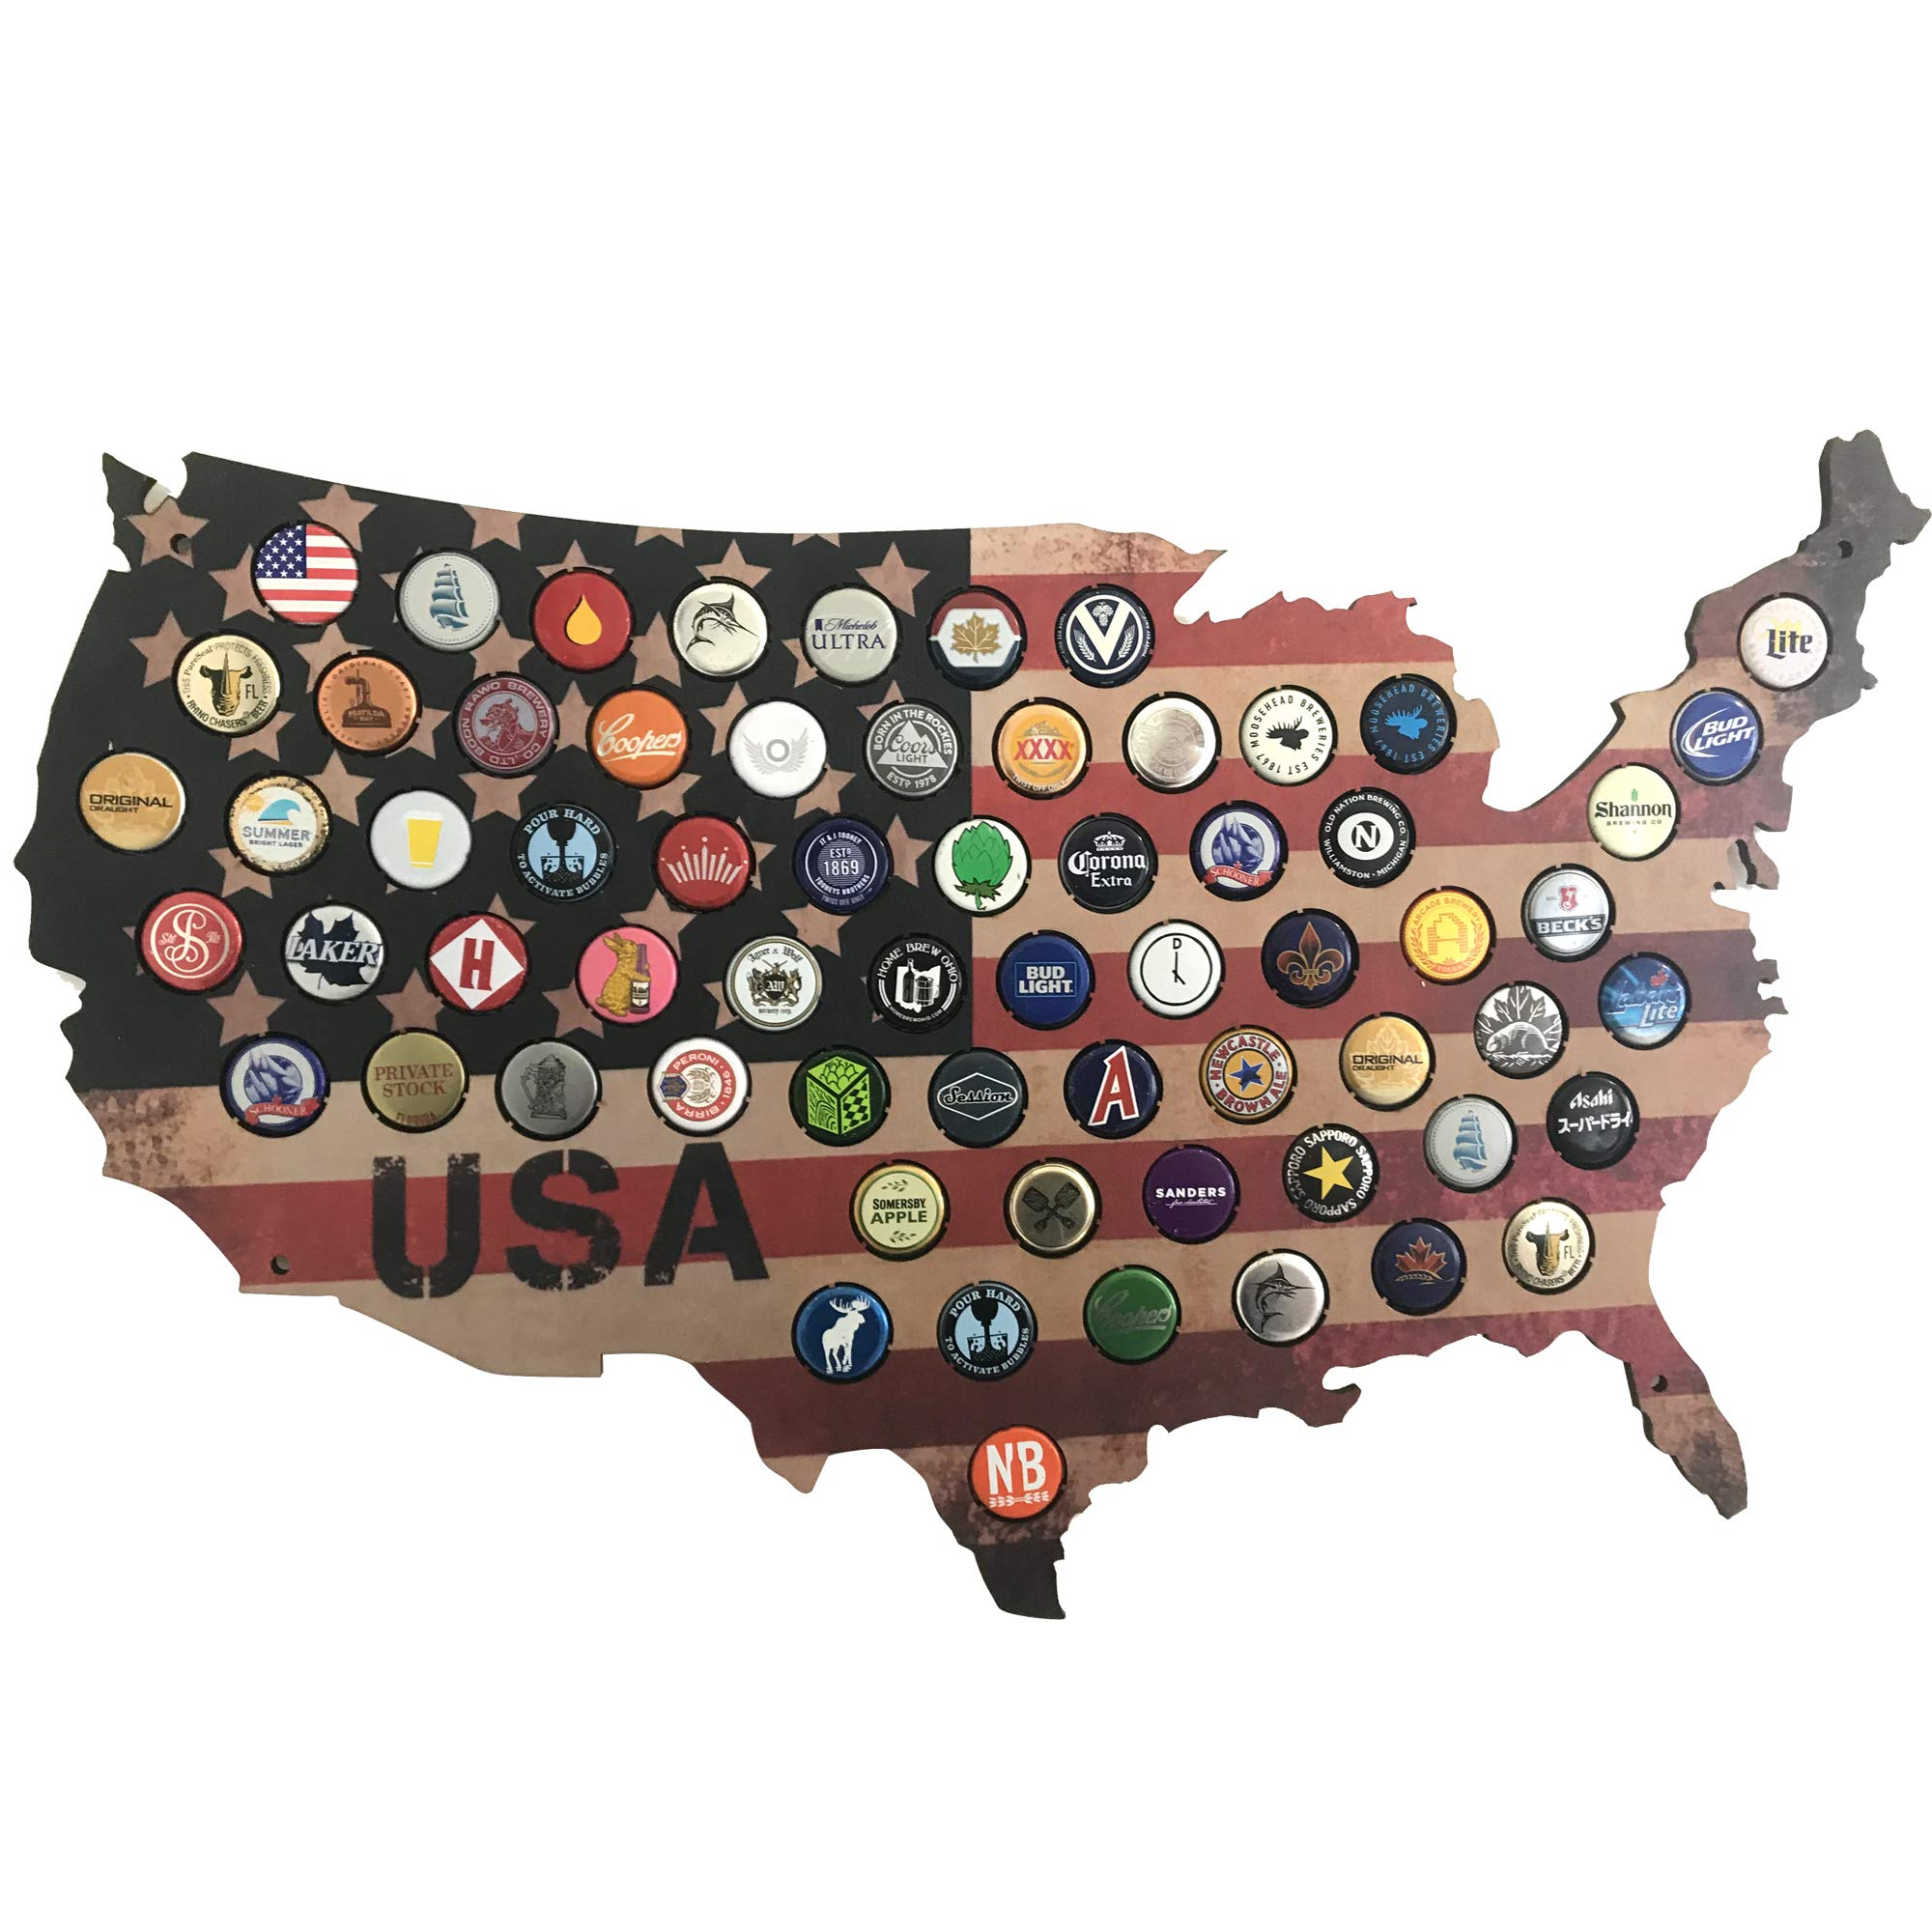 Beer Gifts For Men-USA Beer Cap Map (Stars & Stripes) for Craft Beer Collectors-Great Craft Beer Gifts For Father's Day